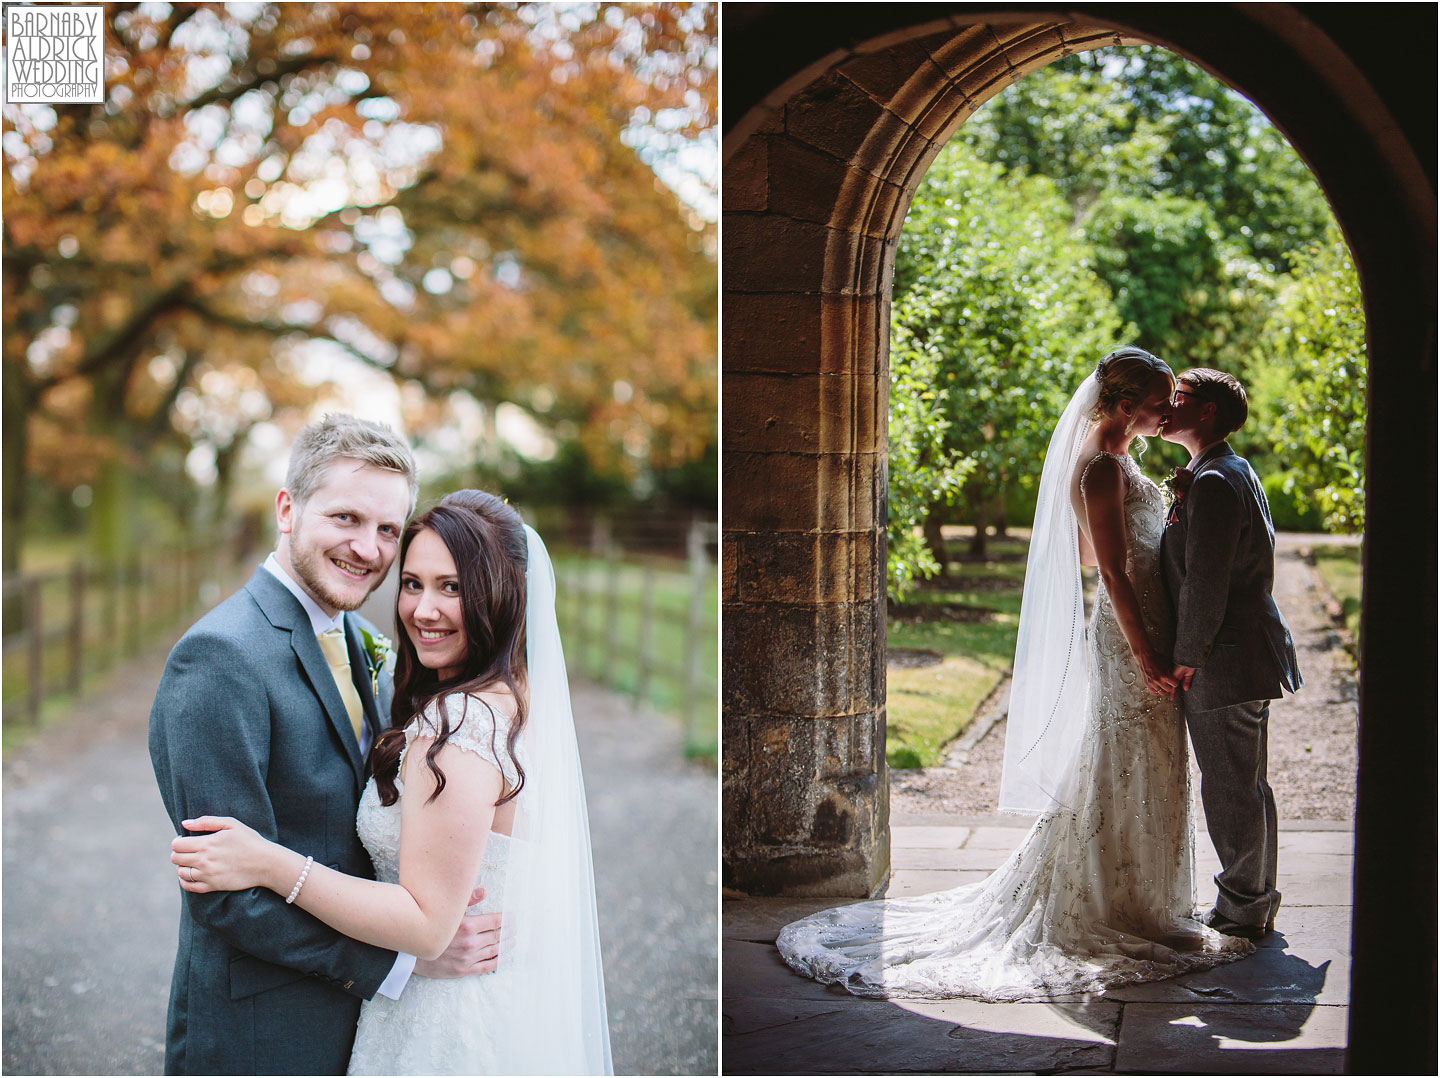 Couple wedding photos at York Wedding Barns at Villa farm in York, Amazing Yorkshire Wedding Photos, Best Yorkshire Wedding Photos 2018